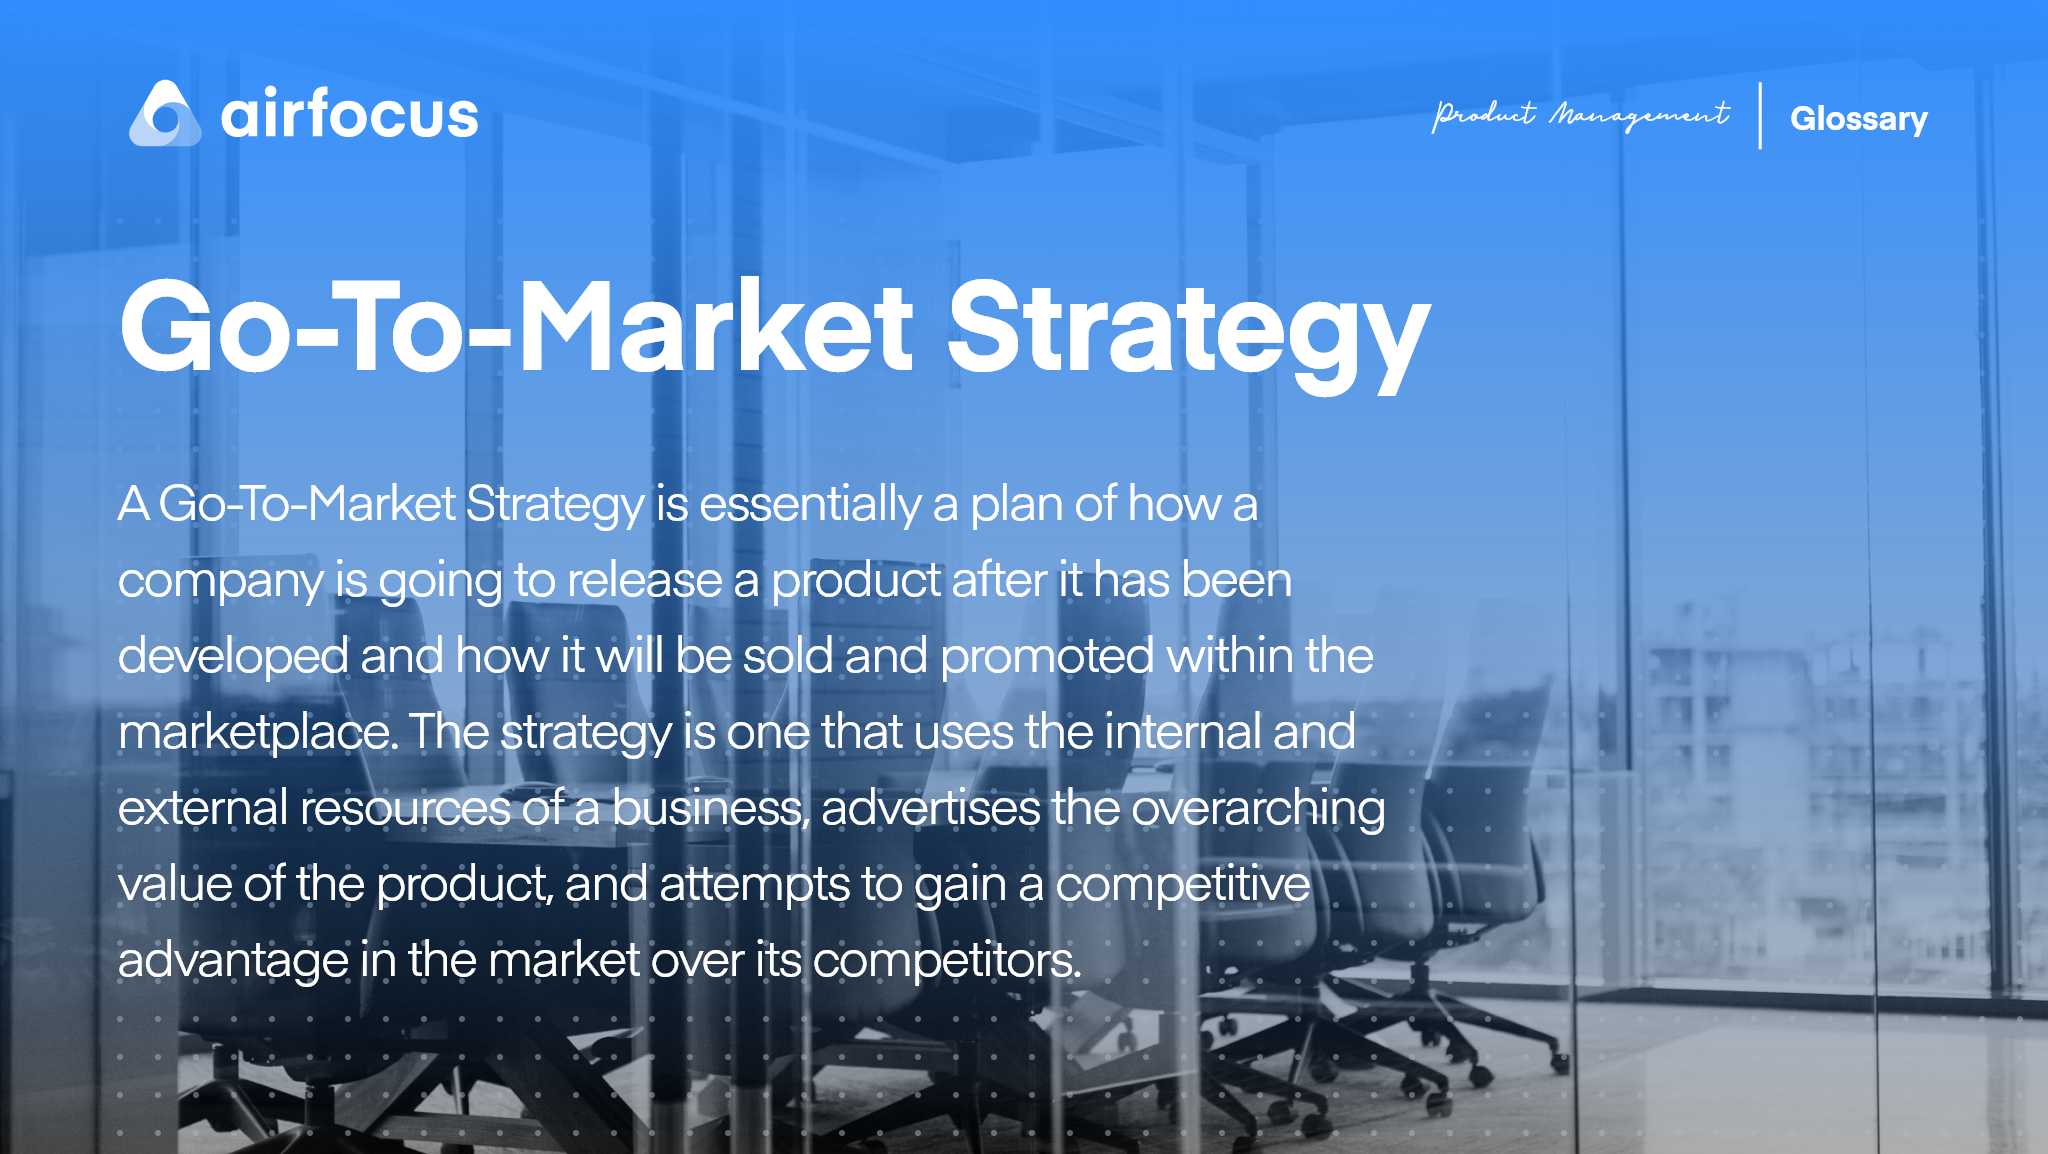 What is a Go-To-Market Strategy?